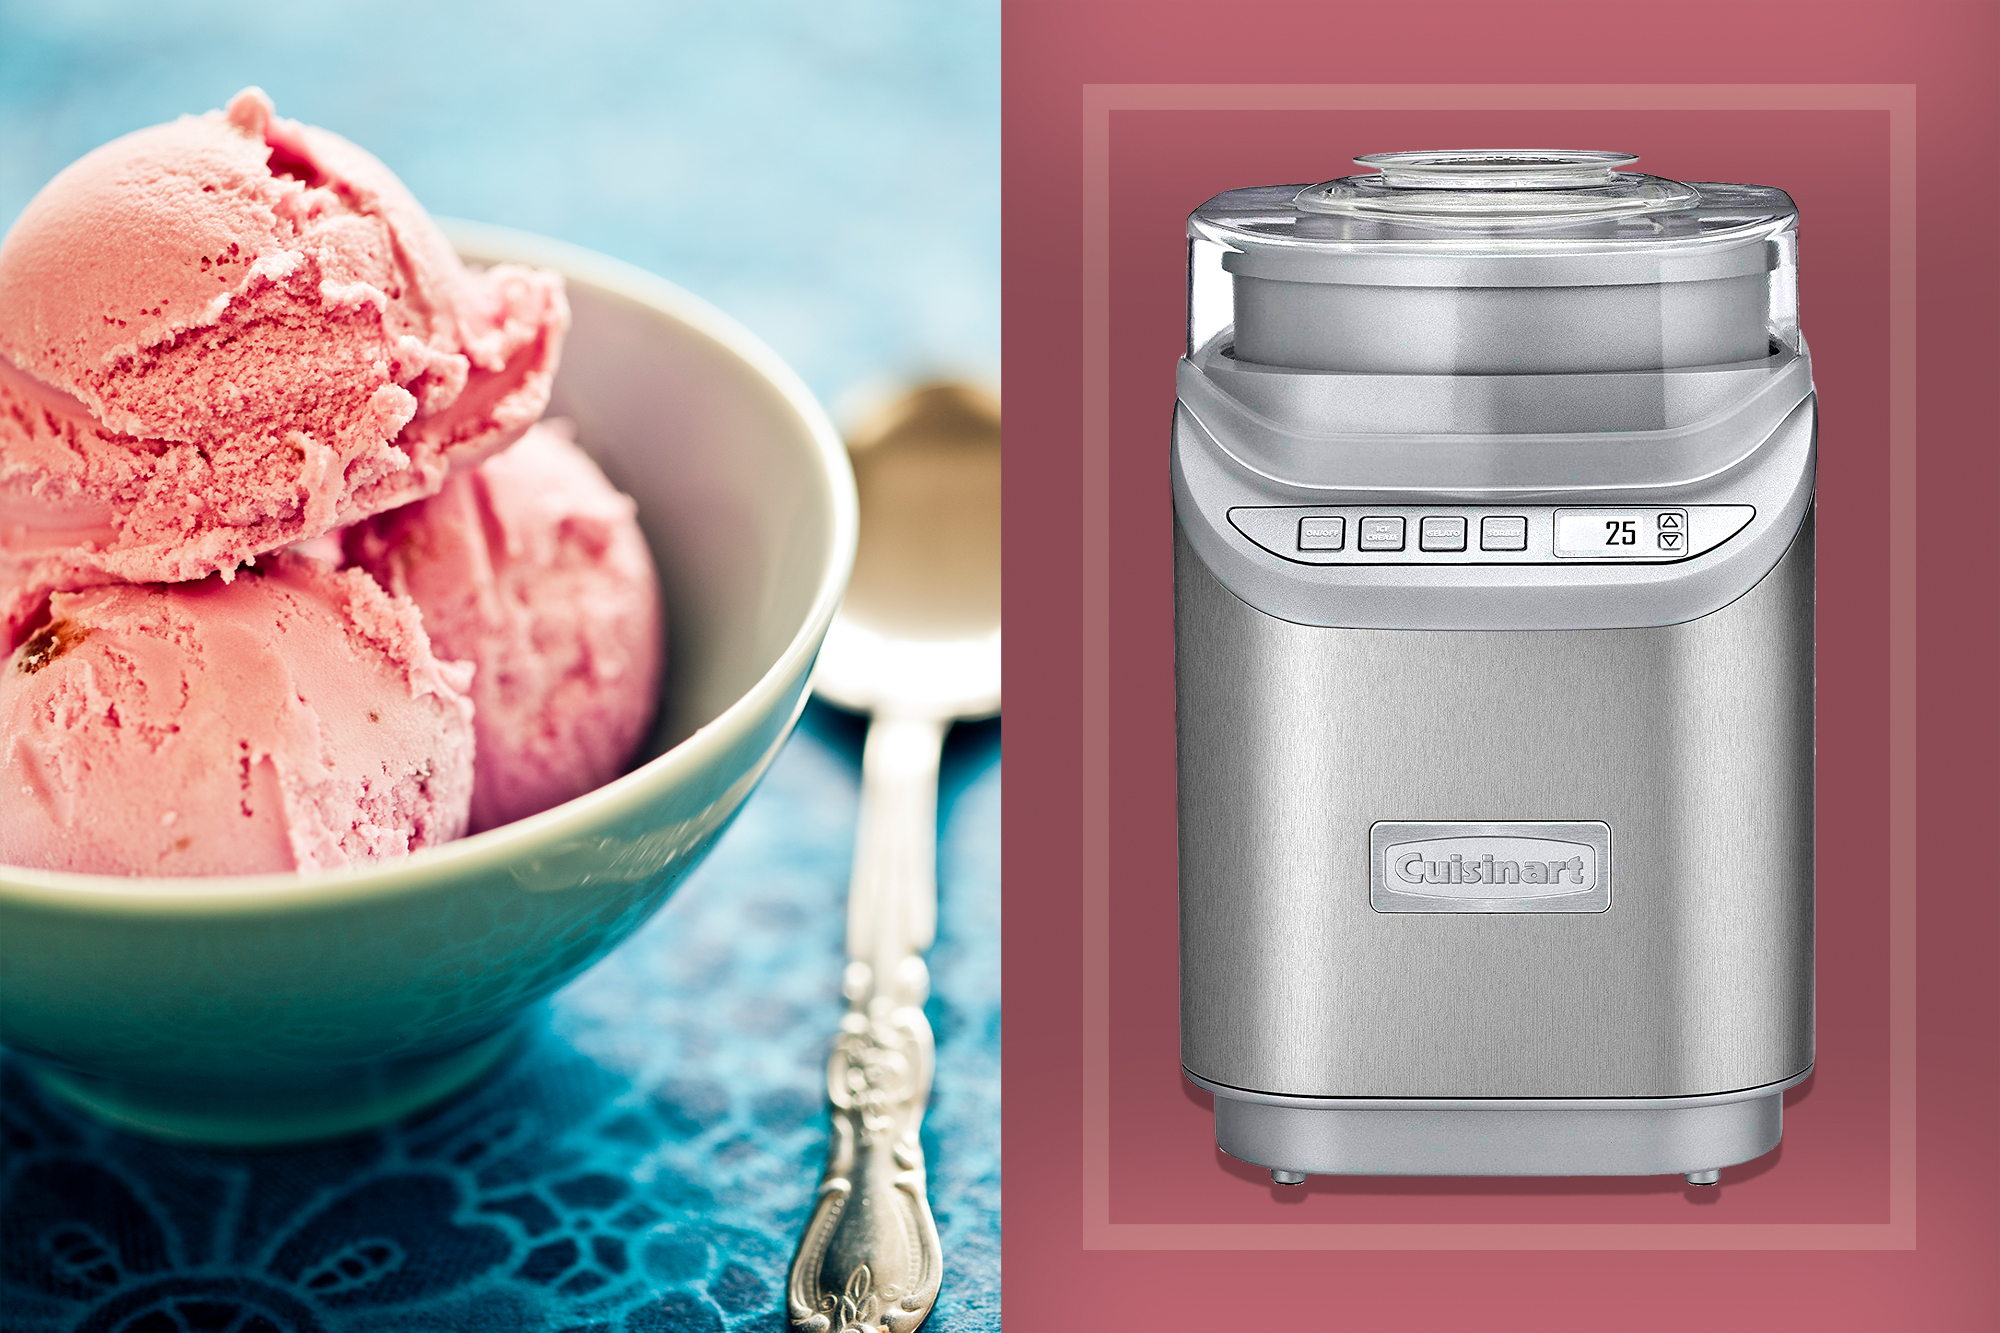 ice cream maker and a bowl of strawberry ice cream